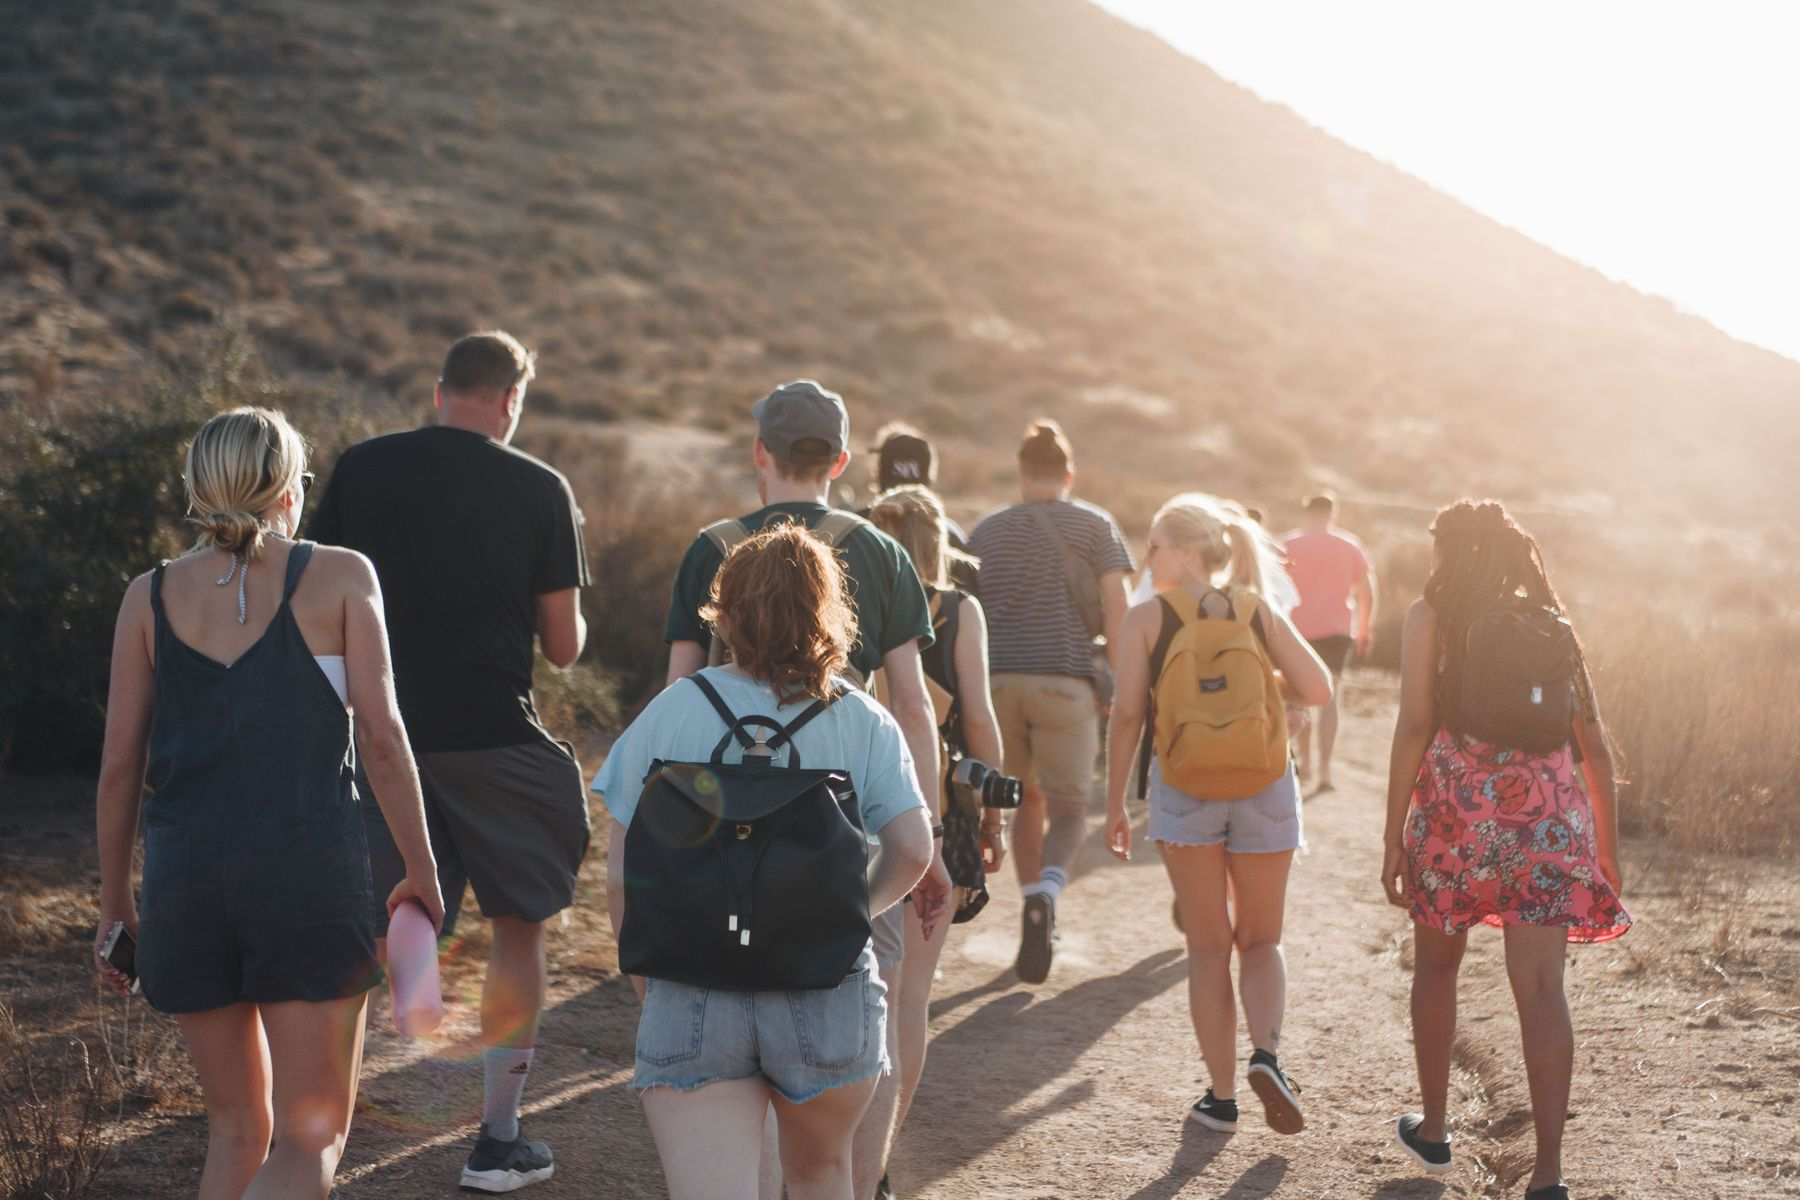 group of travellers walking up a mountain in Temecula, US.